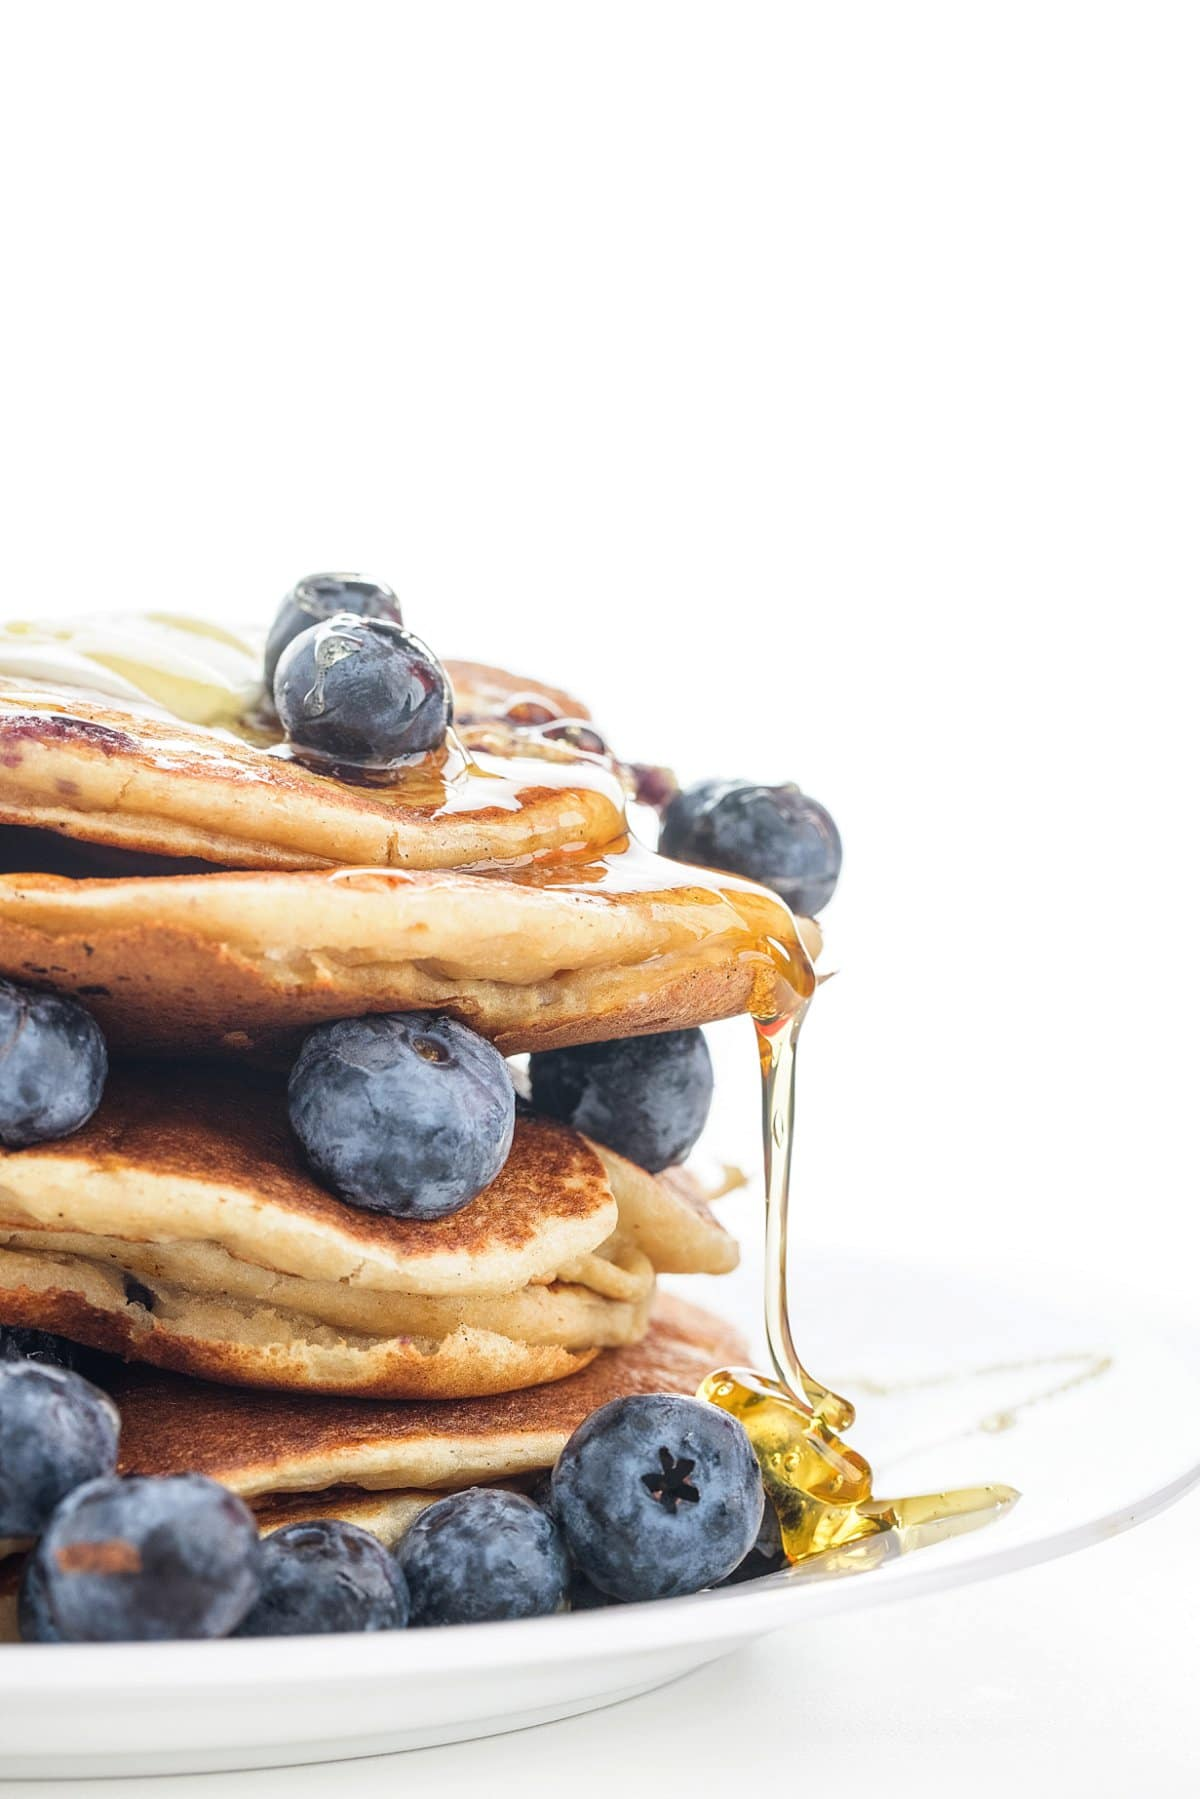 Stack of blueberry banana pancakes made with ricotta